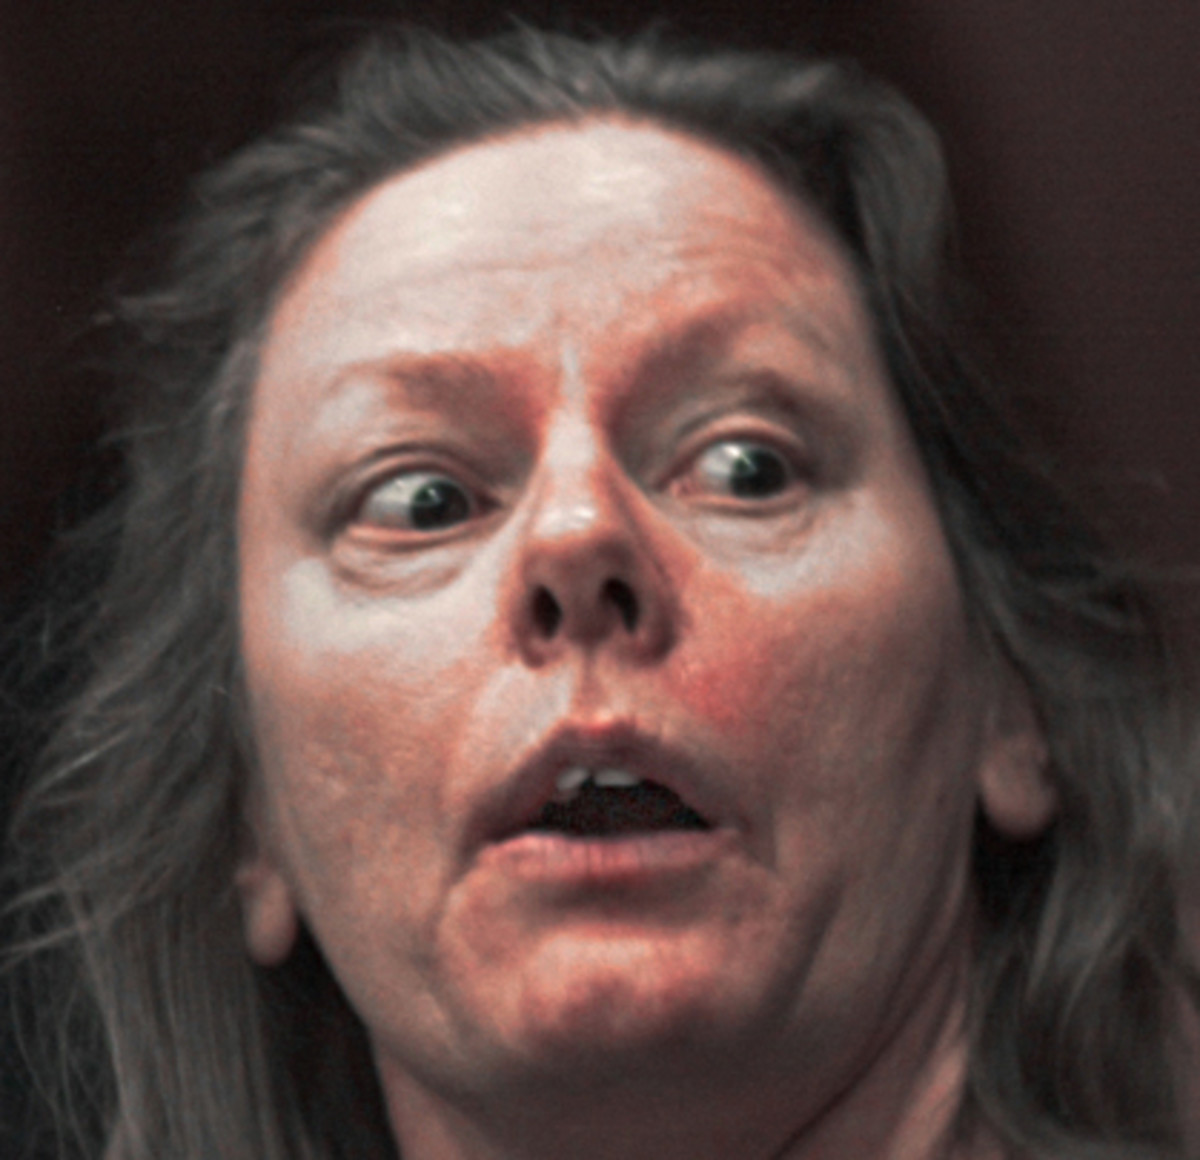 a look at the life and sentencing of aileen carol wuornos She was convicted and sentenced to death for six of the aileen wuornos was born aileen carol aileen wuornos led a tortured, torturing life that is.